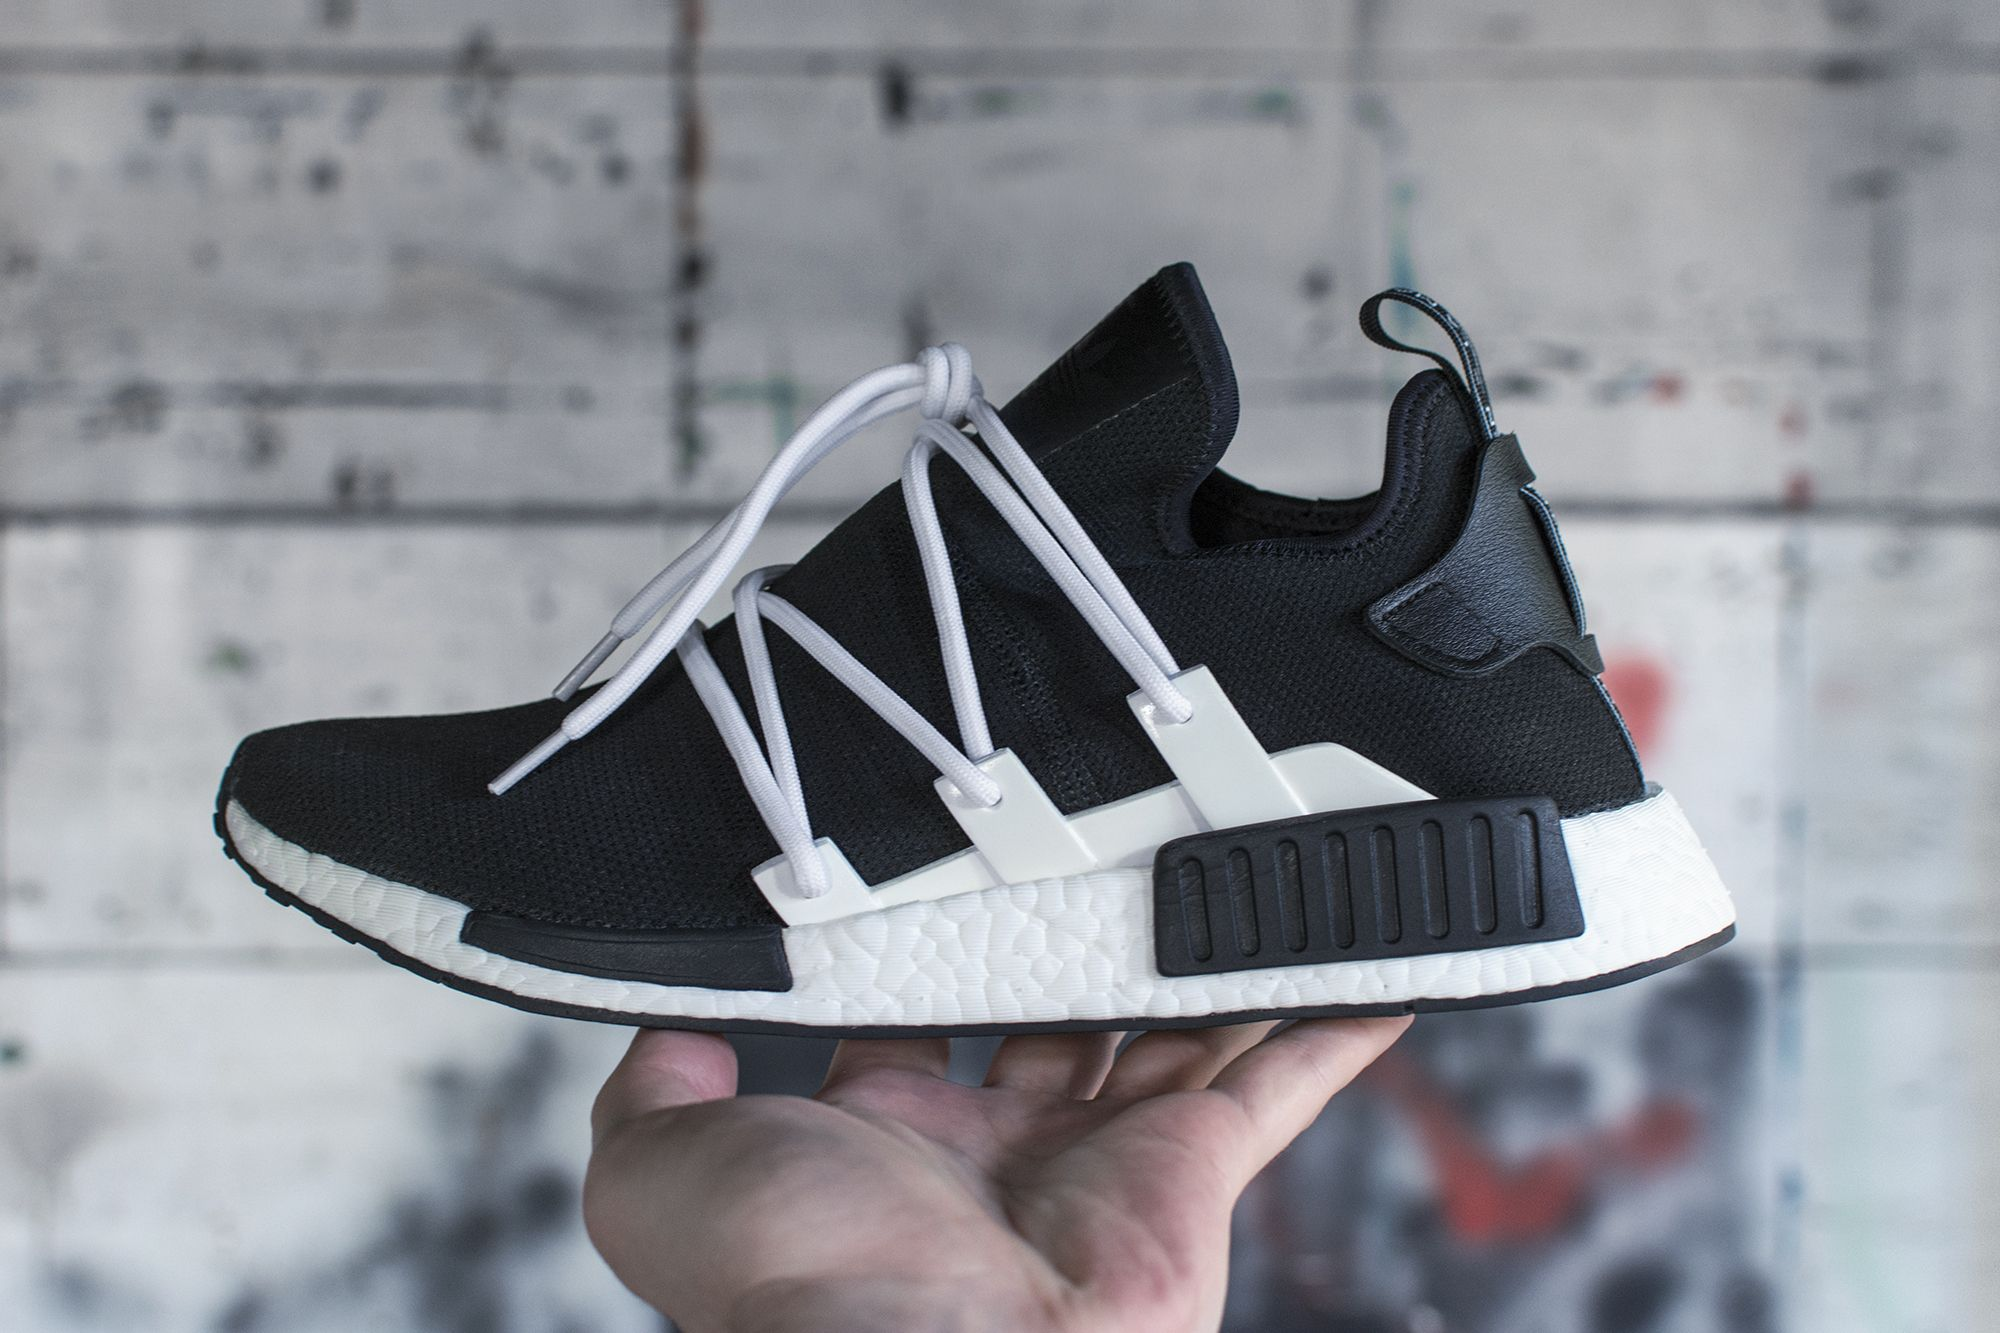 cheaper 55ecd 97fd5 NMD XR1 Custom cage | Nike Sneakers in 2019 | Adidas shoes ...